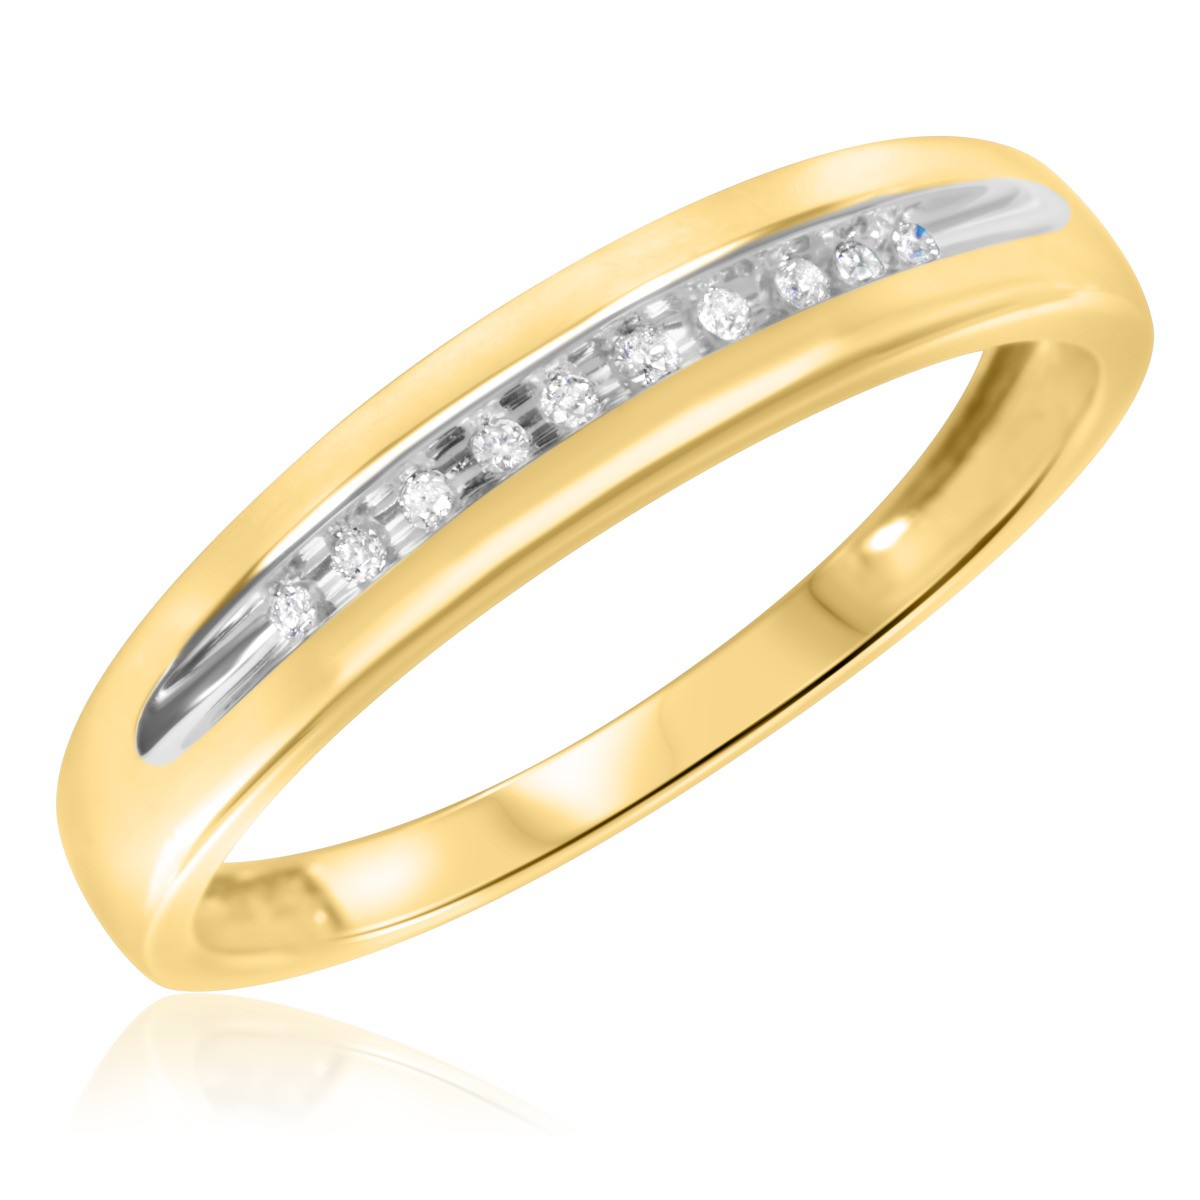 1/15 CT. T.W. Diamond Men's Wedding Band 10K Yellow Gold